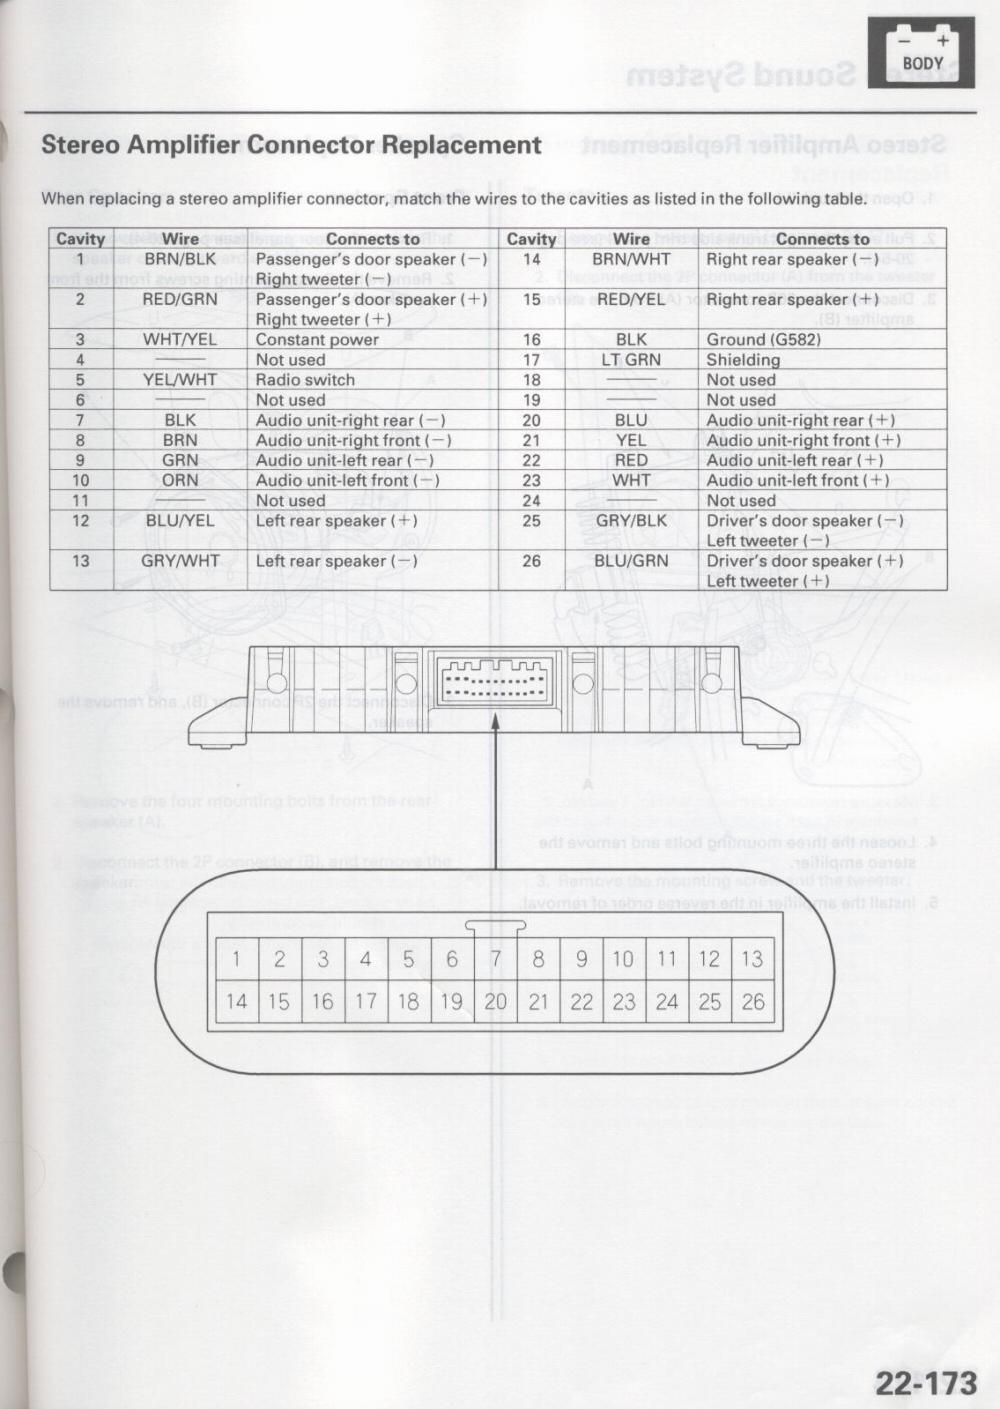 Acura 2002 TL car stereo amplifier wiring diagram harness car radio stereo audio wiring diagram autoradio connector wire Bose Lifestyle 5 Wiring Diagram at gsmx.co